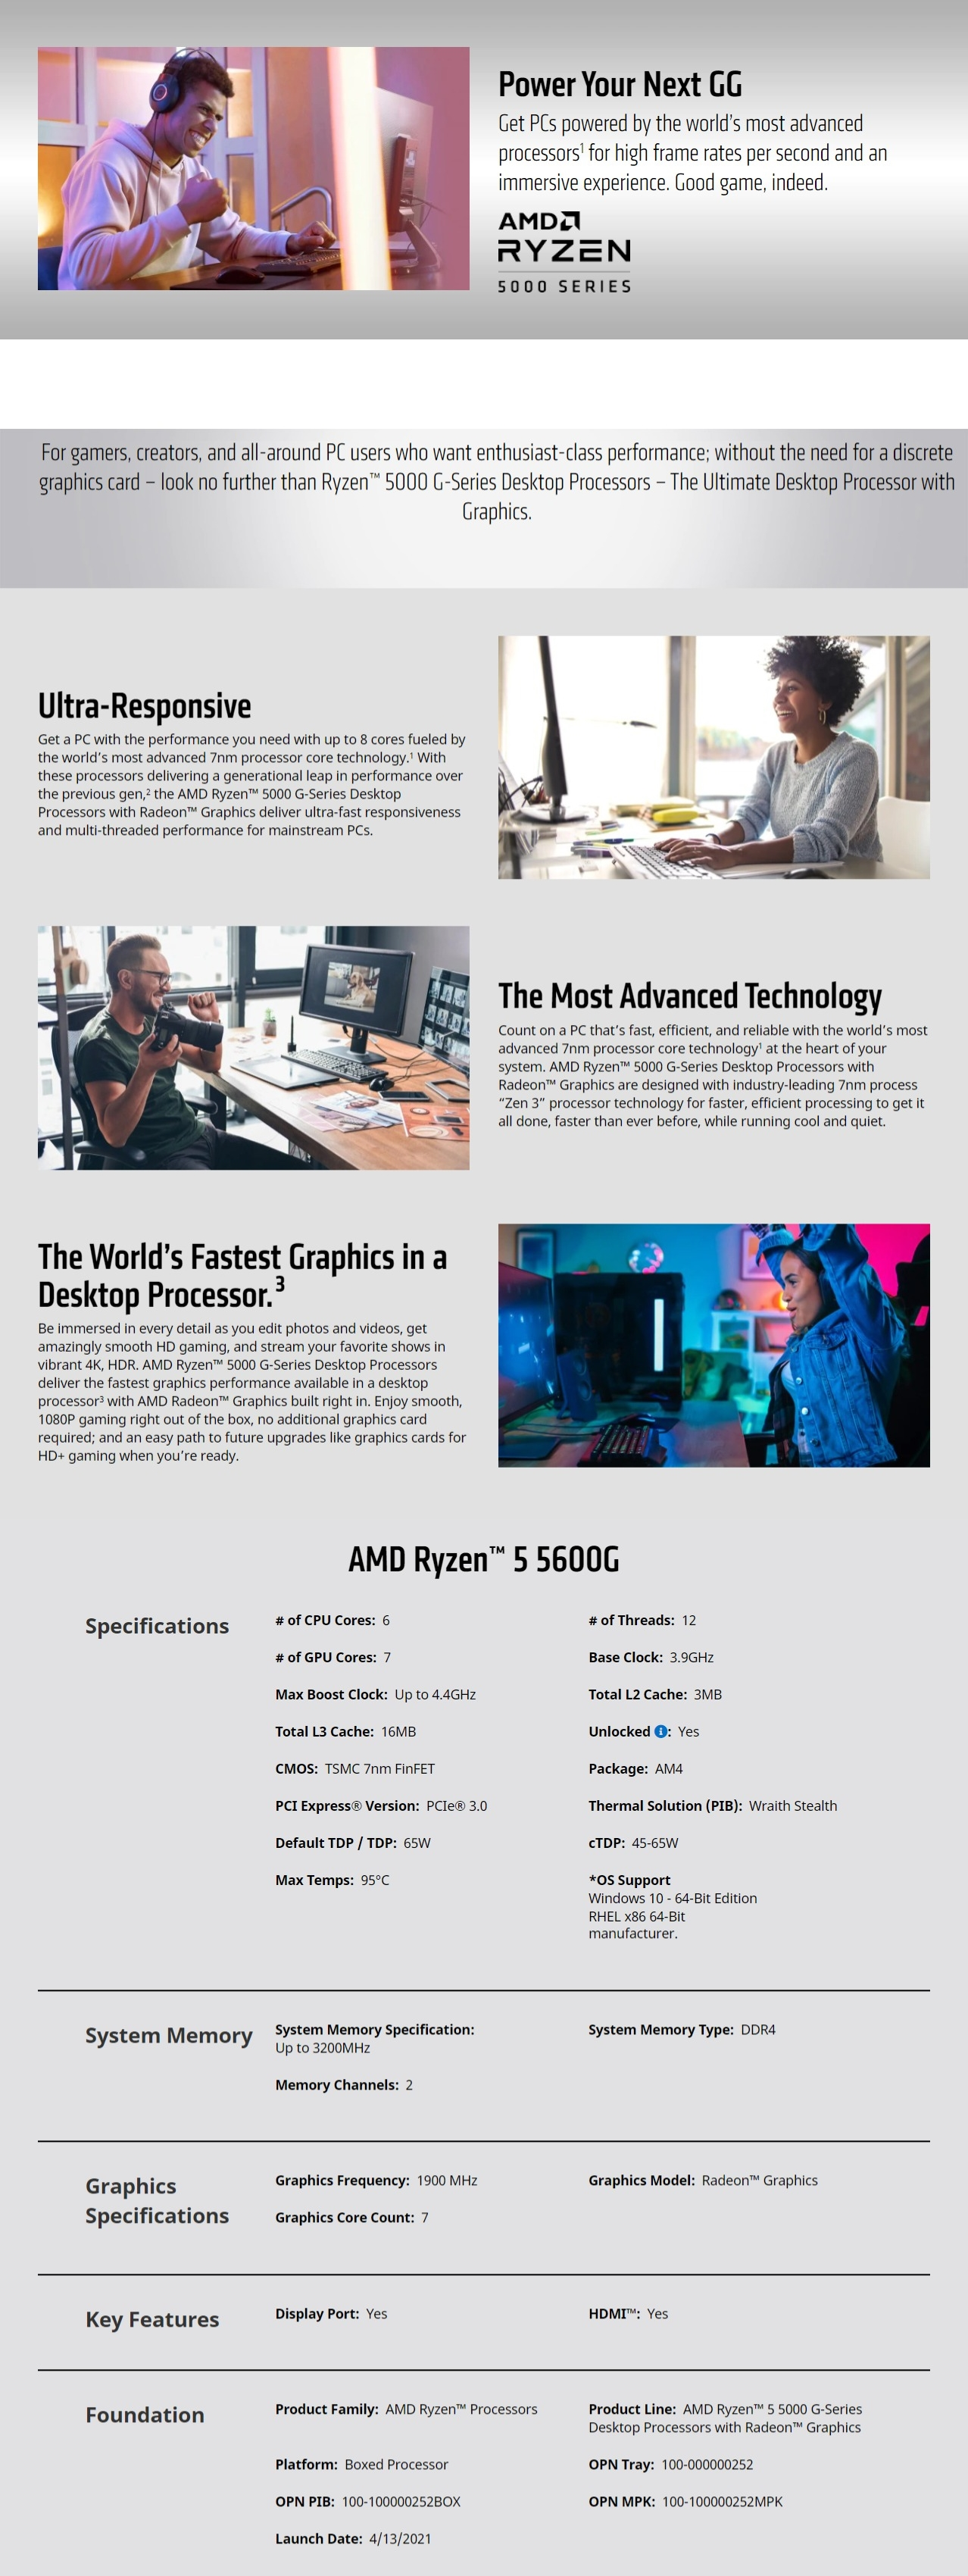 A large marketing image providing additional information about the product AMD Ryzen 5 5600G 6 Core 12 Thread Up To 4.4Ghz AM4 APU Retail Box - With Wraith Stealth Cooler - Additional alt info not provided